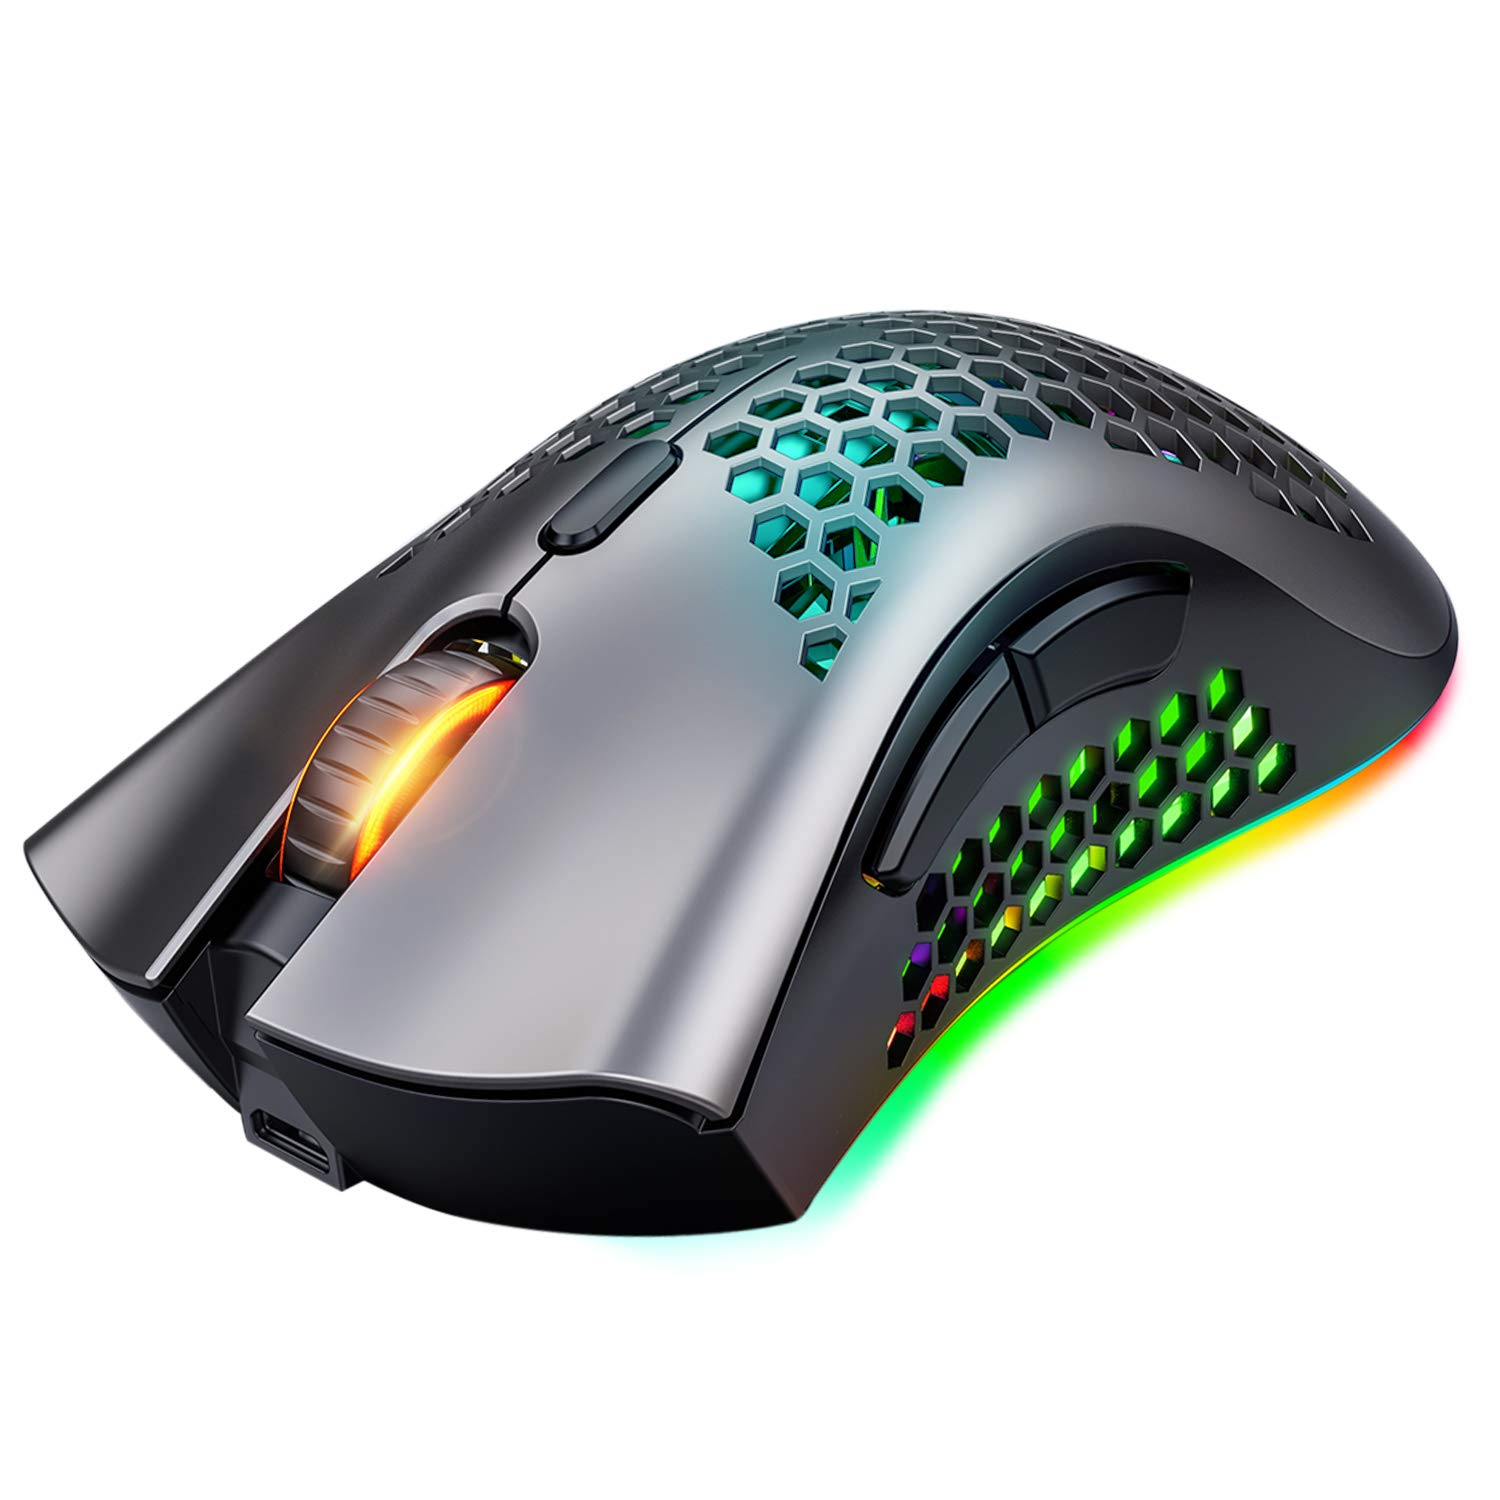 Wireless Gaming Mouse, Rechargeable Gaming Mouse, 7 Programmed Buttons with Silent Click, USB Receiver, Ergonomic RGB Optical Sensor Lightweight Honeycomb Shell Mouse for Computer, Laptop, PC